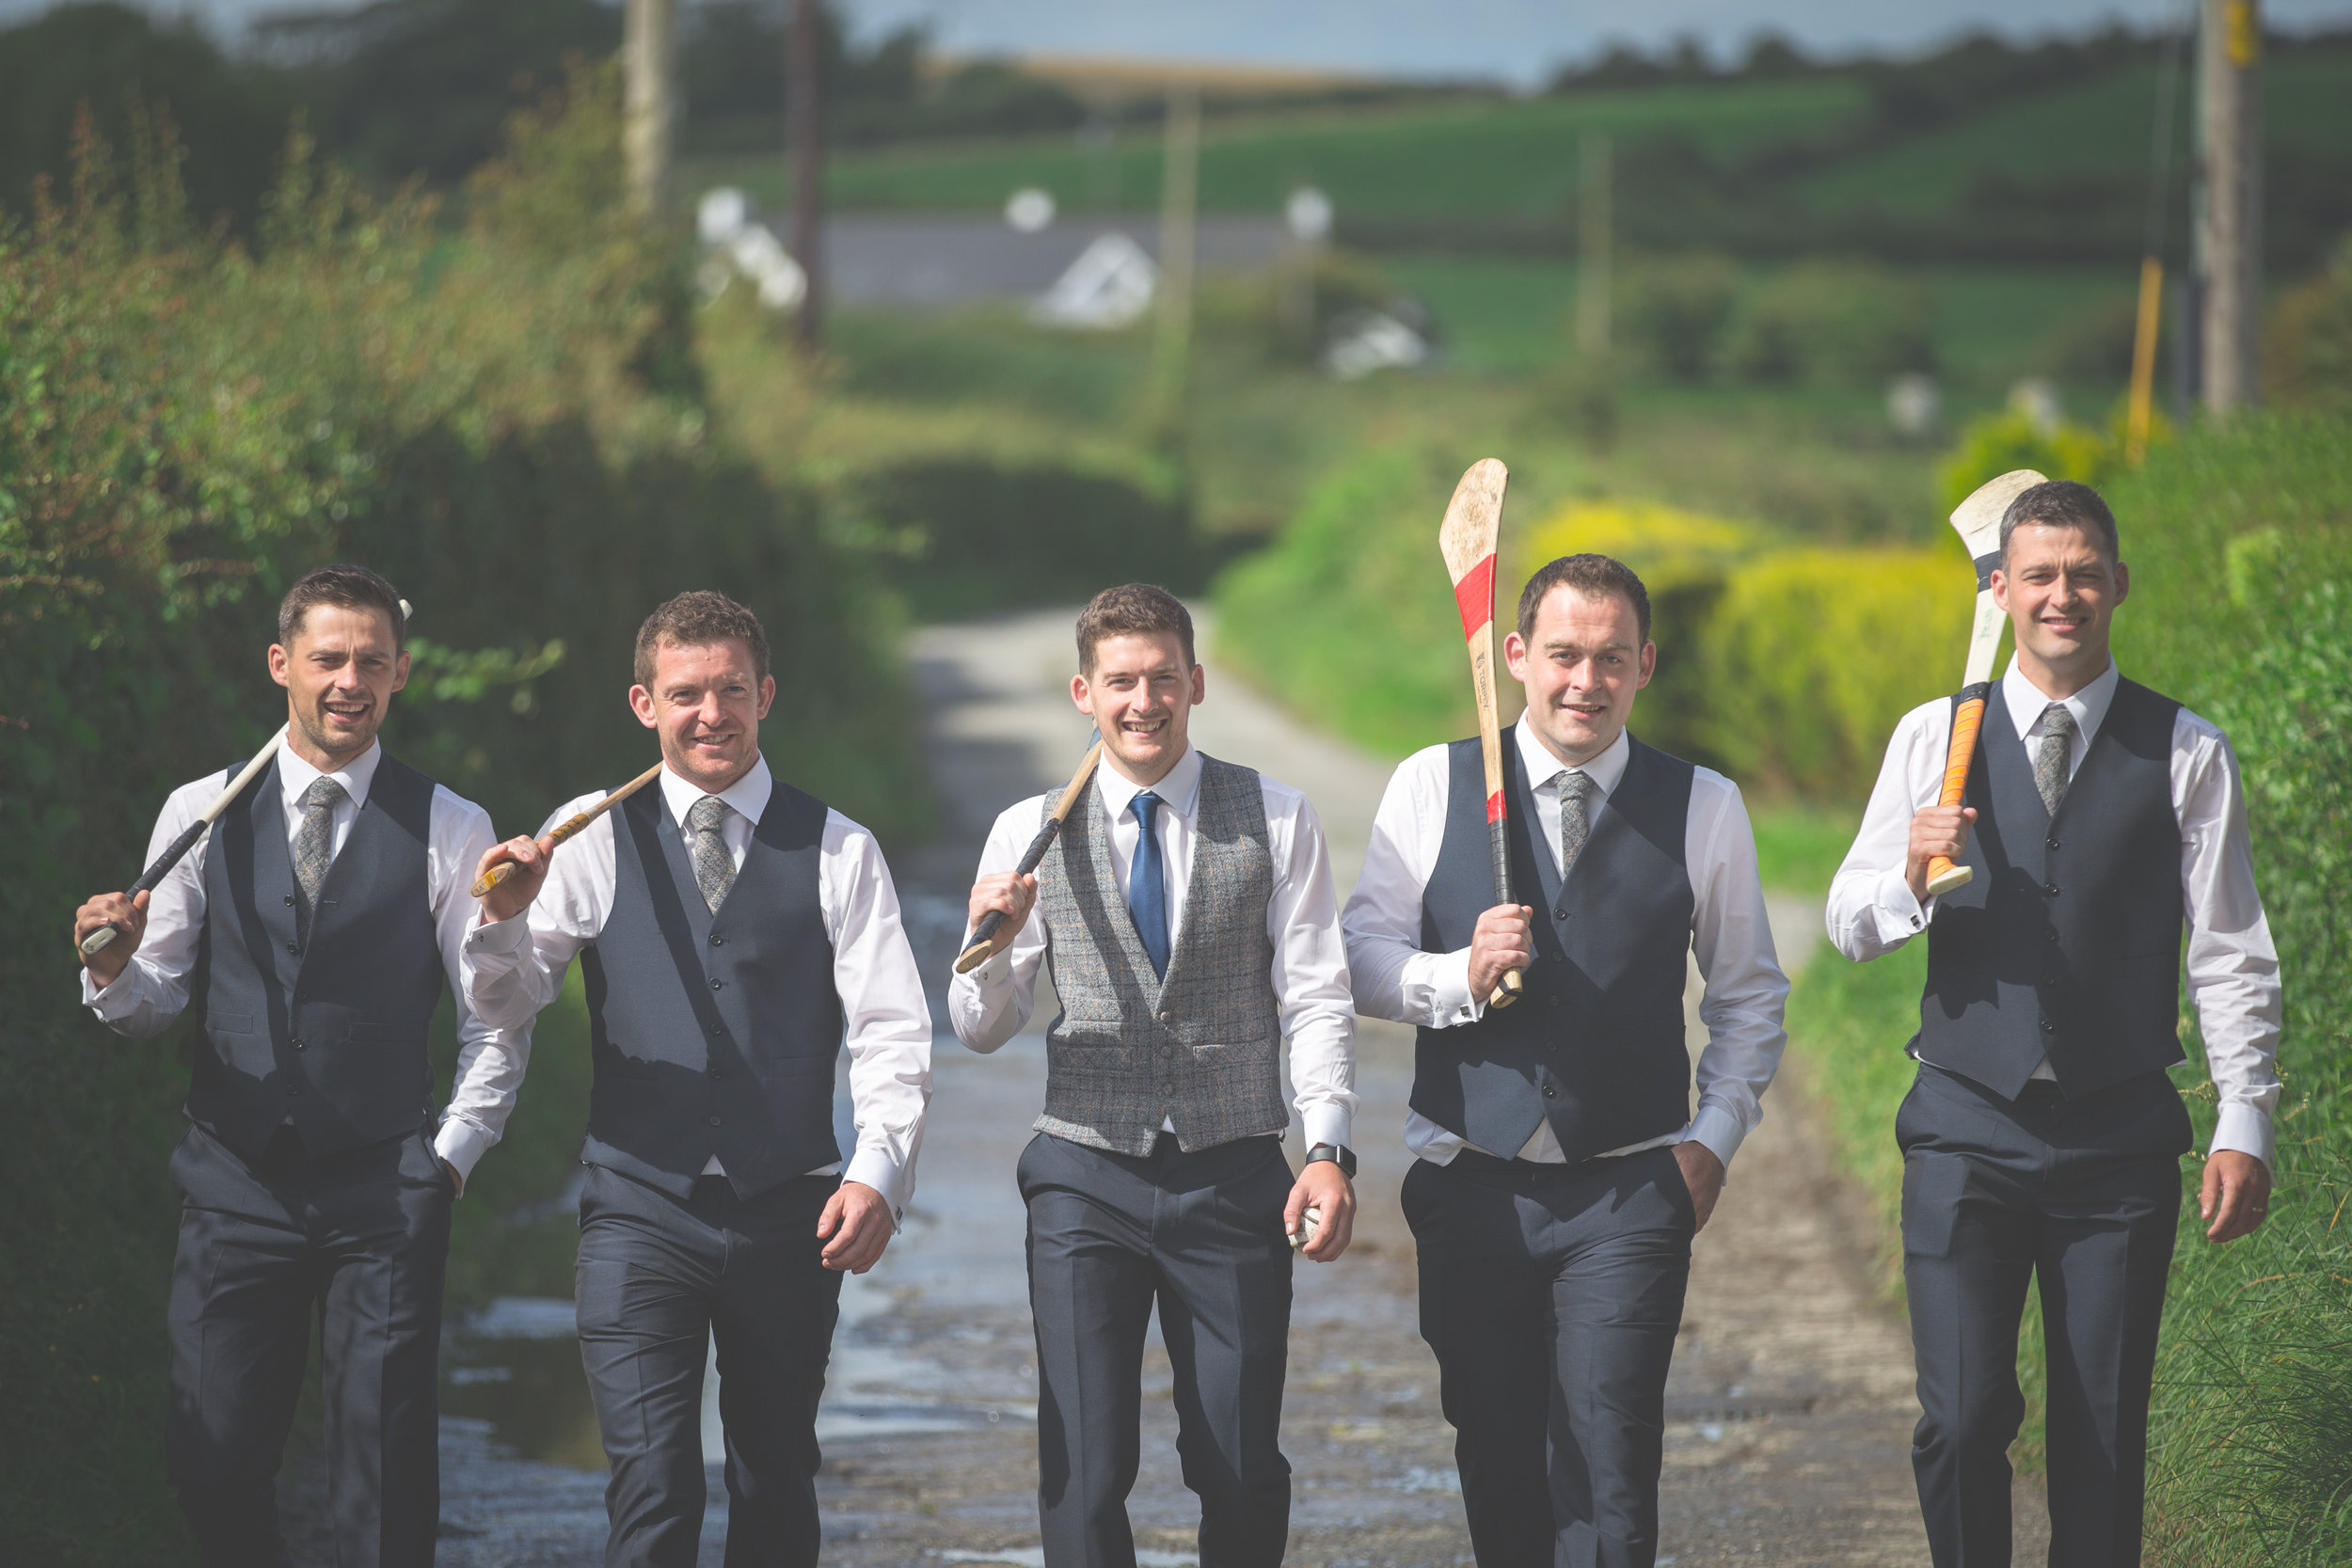 Brian McEwan Wedding Photography | Carol-Anne & Sean | Groom & Groomsmen-58.jpg